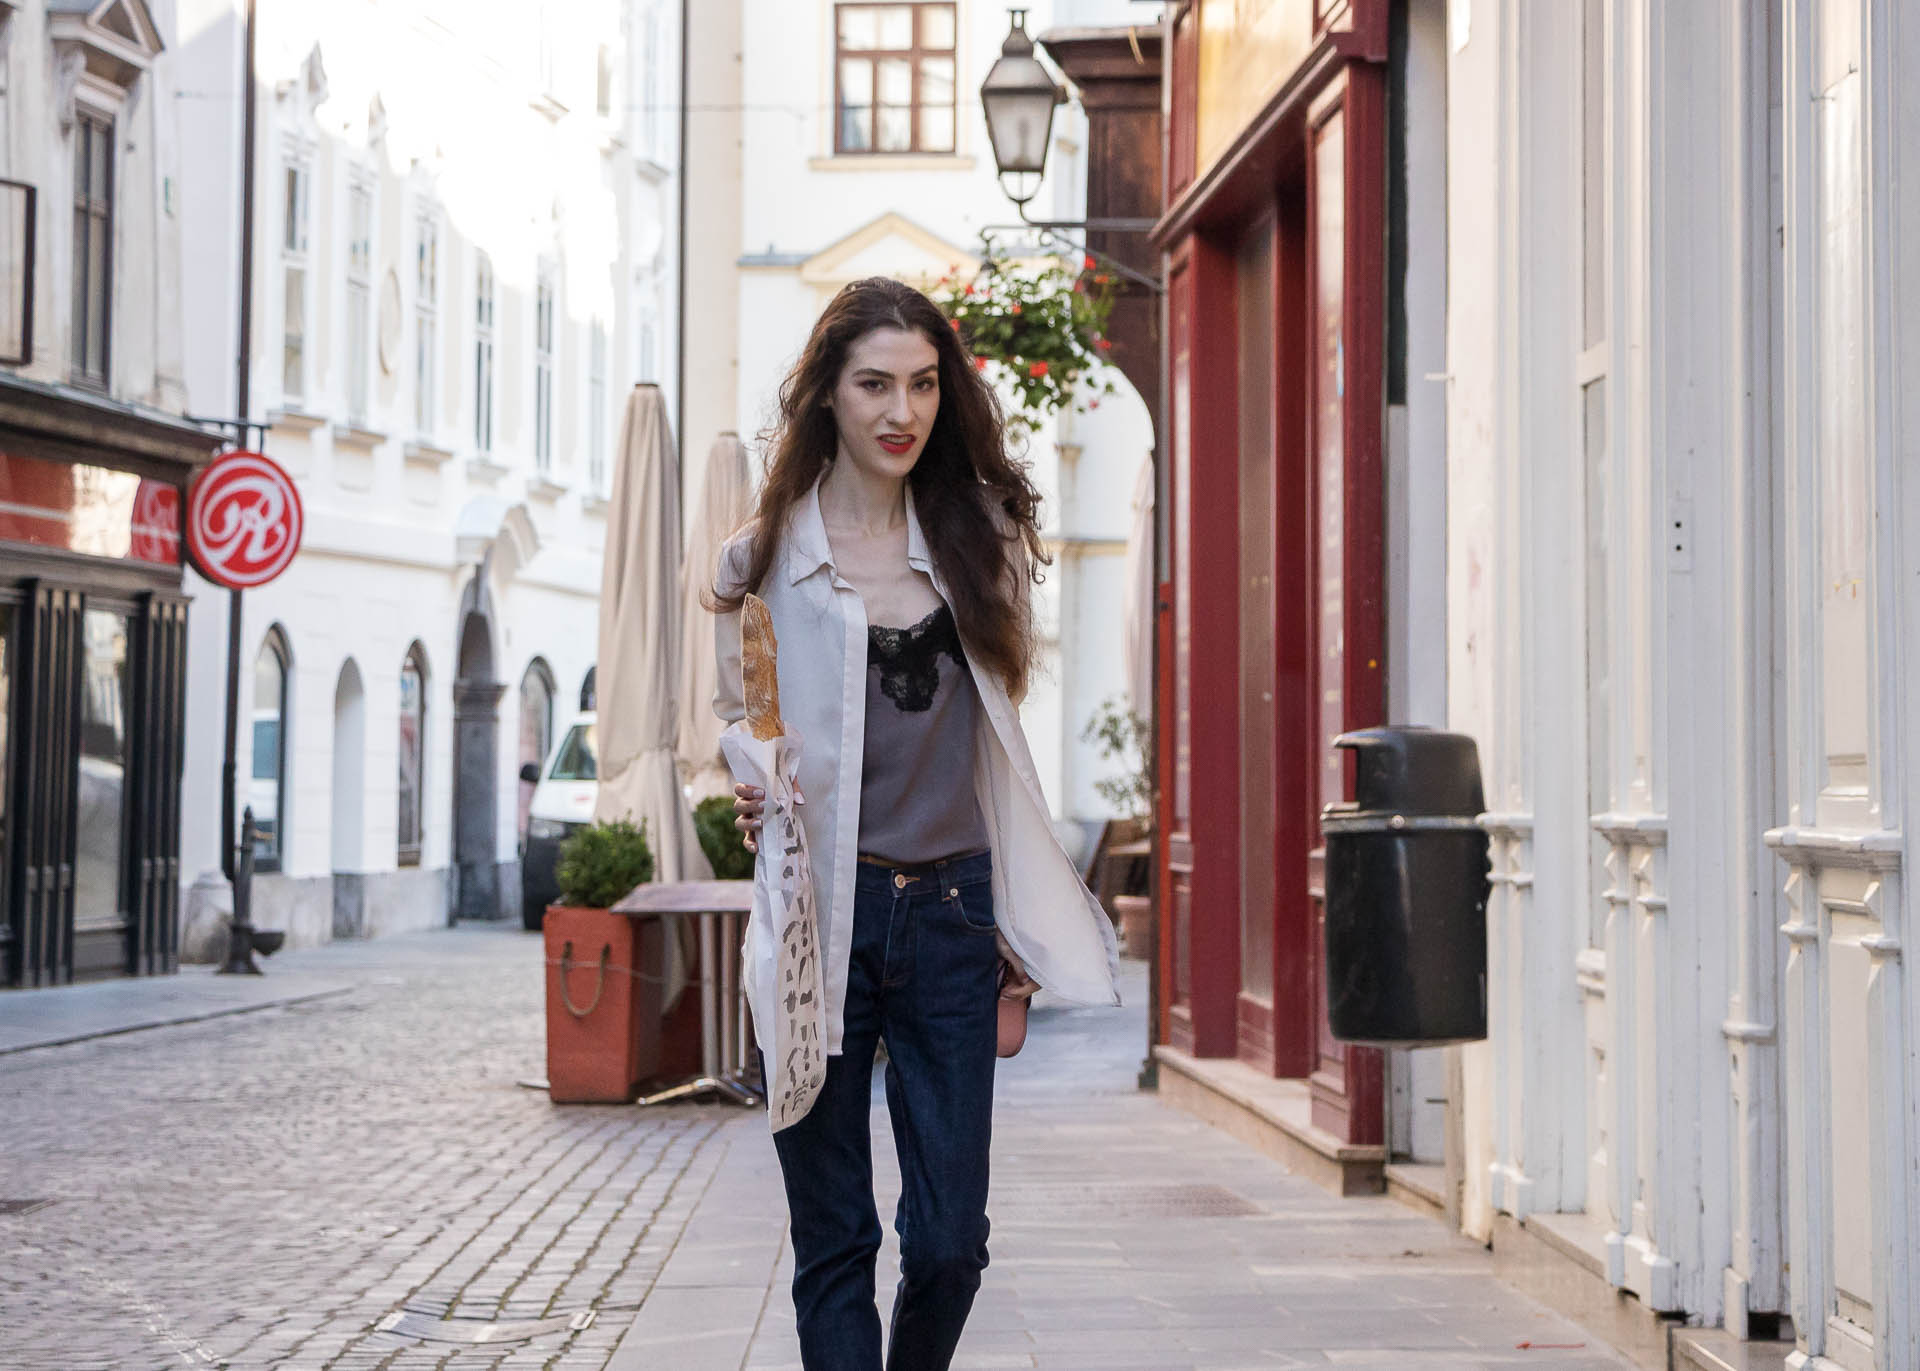 Fashion Blogger Veronika Lipar of Brunette from Wall Street wearing white sheer shirt with transparent back from Sandro Paris, grey silk slip top, A.P.C. dark denim jeans, mules, pink Furla shoulder bag, while holding a baguette on the street